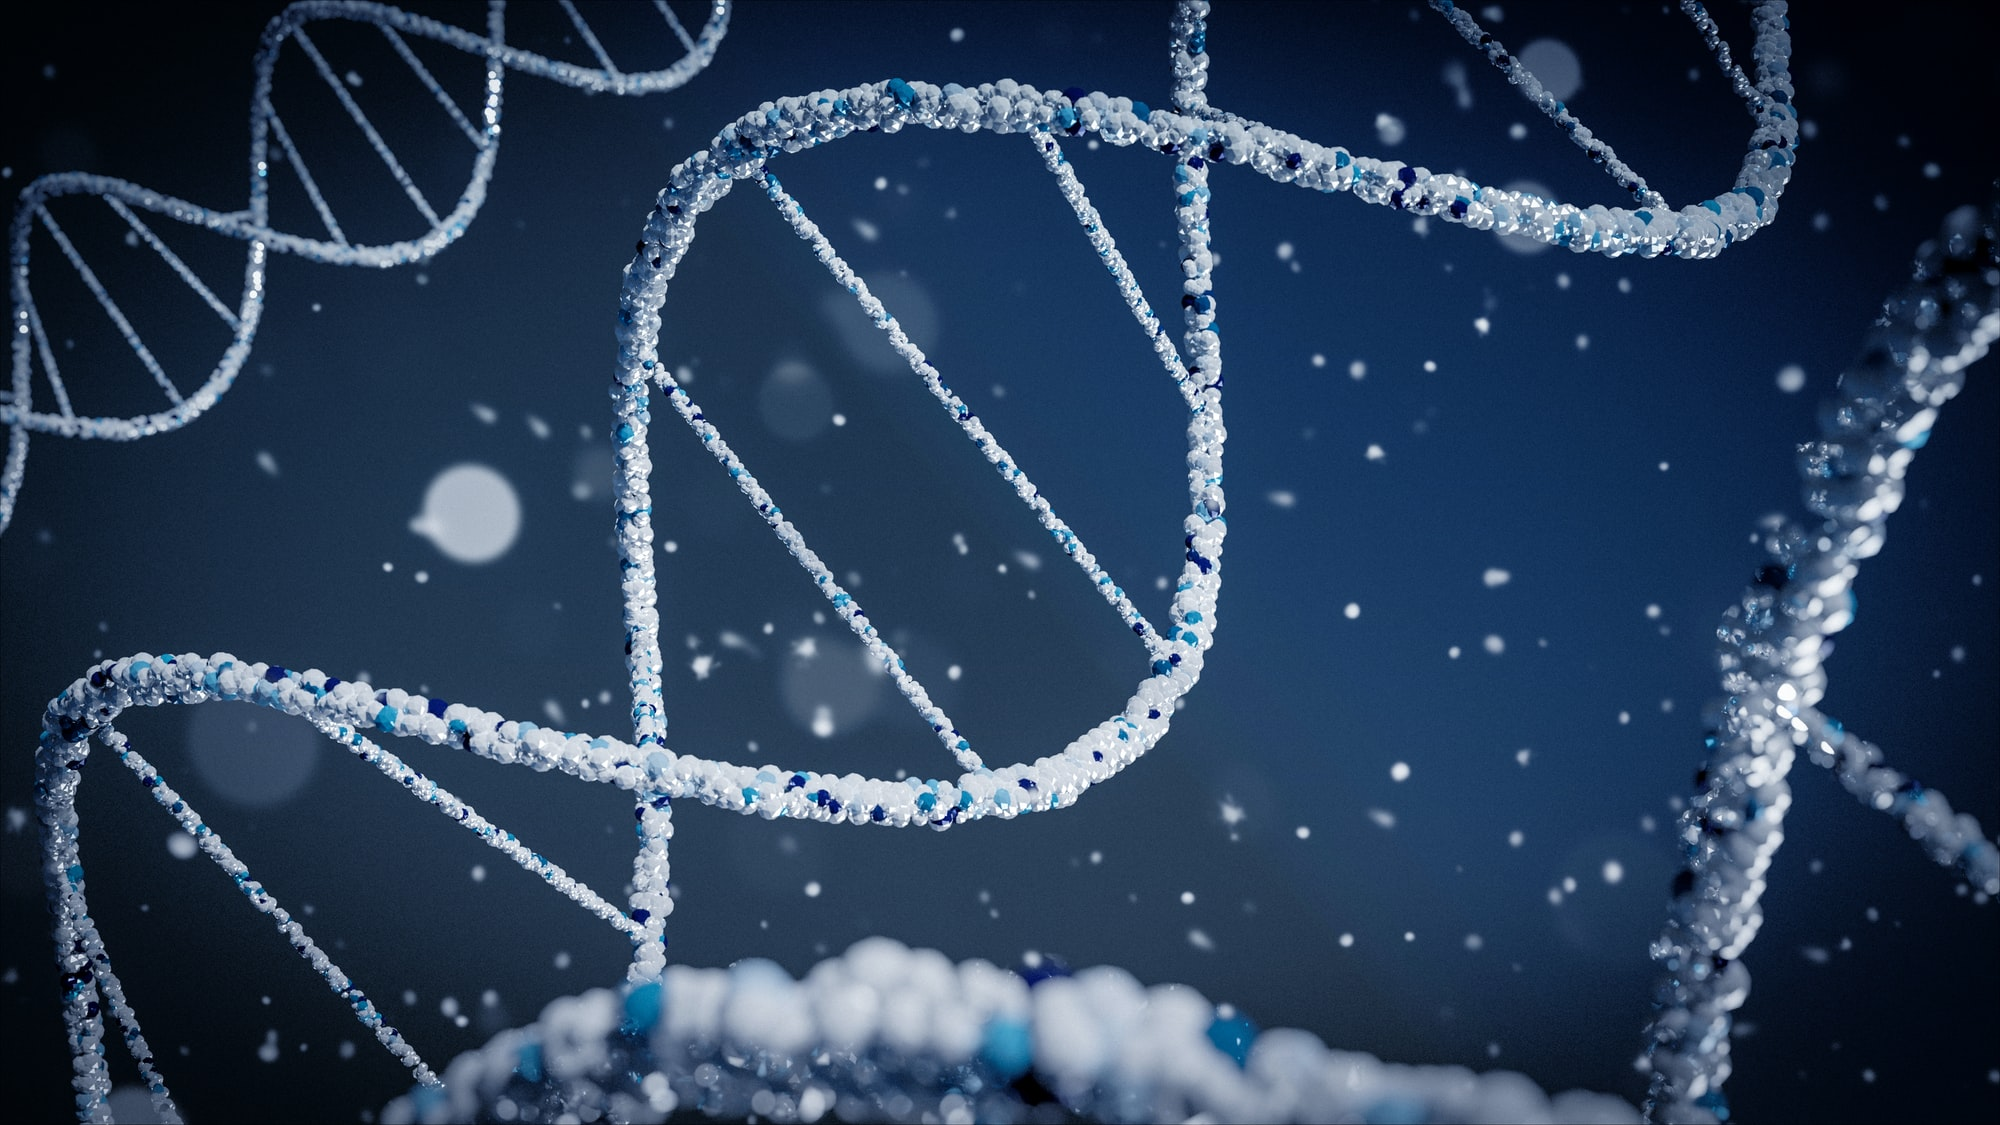 NIH Awards $185 Million to Research How Genomic Variations Influence Our Health